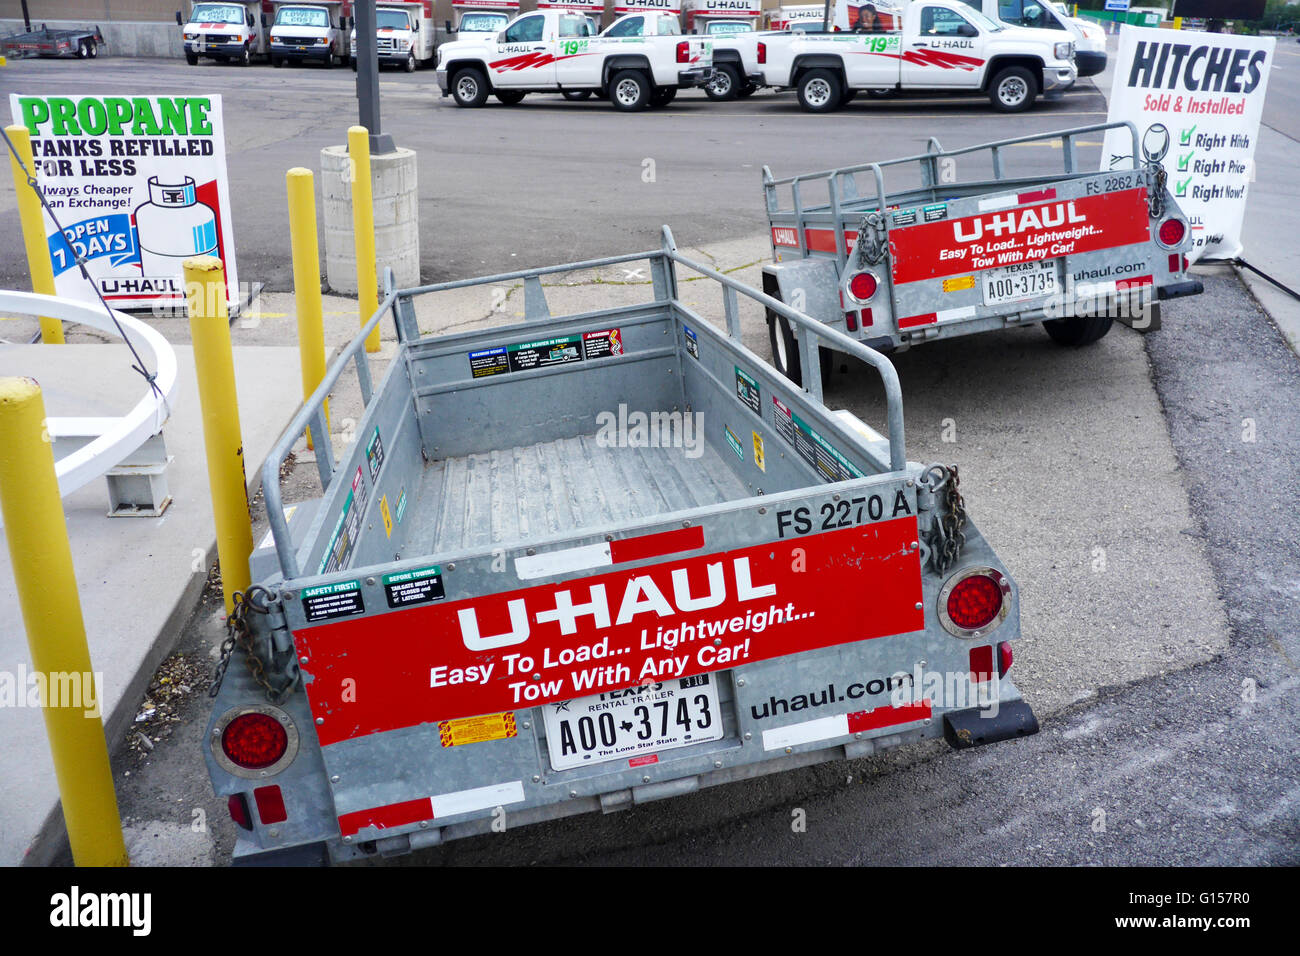 Uhaul - U Haul Rental Trailers For Do It Yourself Hauling And Road Transportation Parked